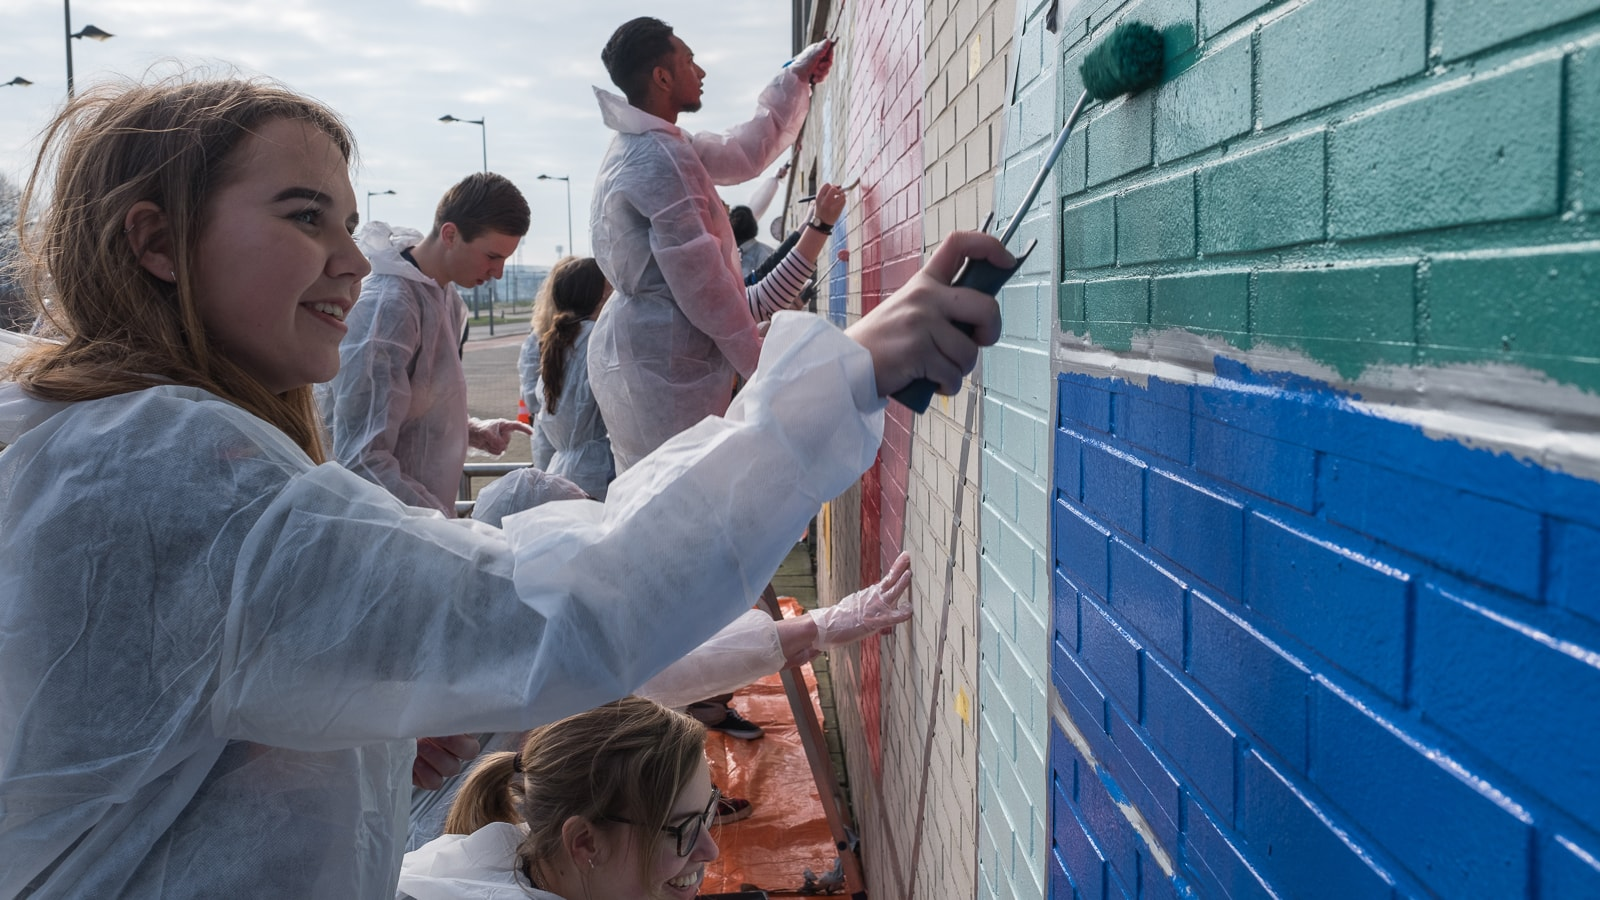 dulux-01-lets-colour-walls-of-connection-rotterdam-masterpeace-launch-taiwan-12-large.jpg